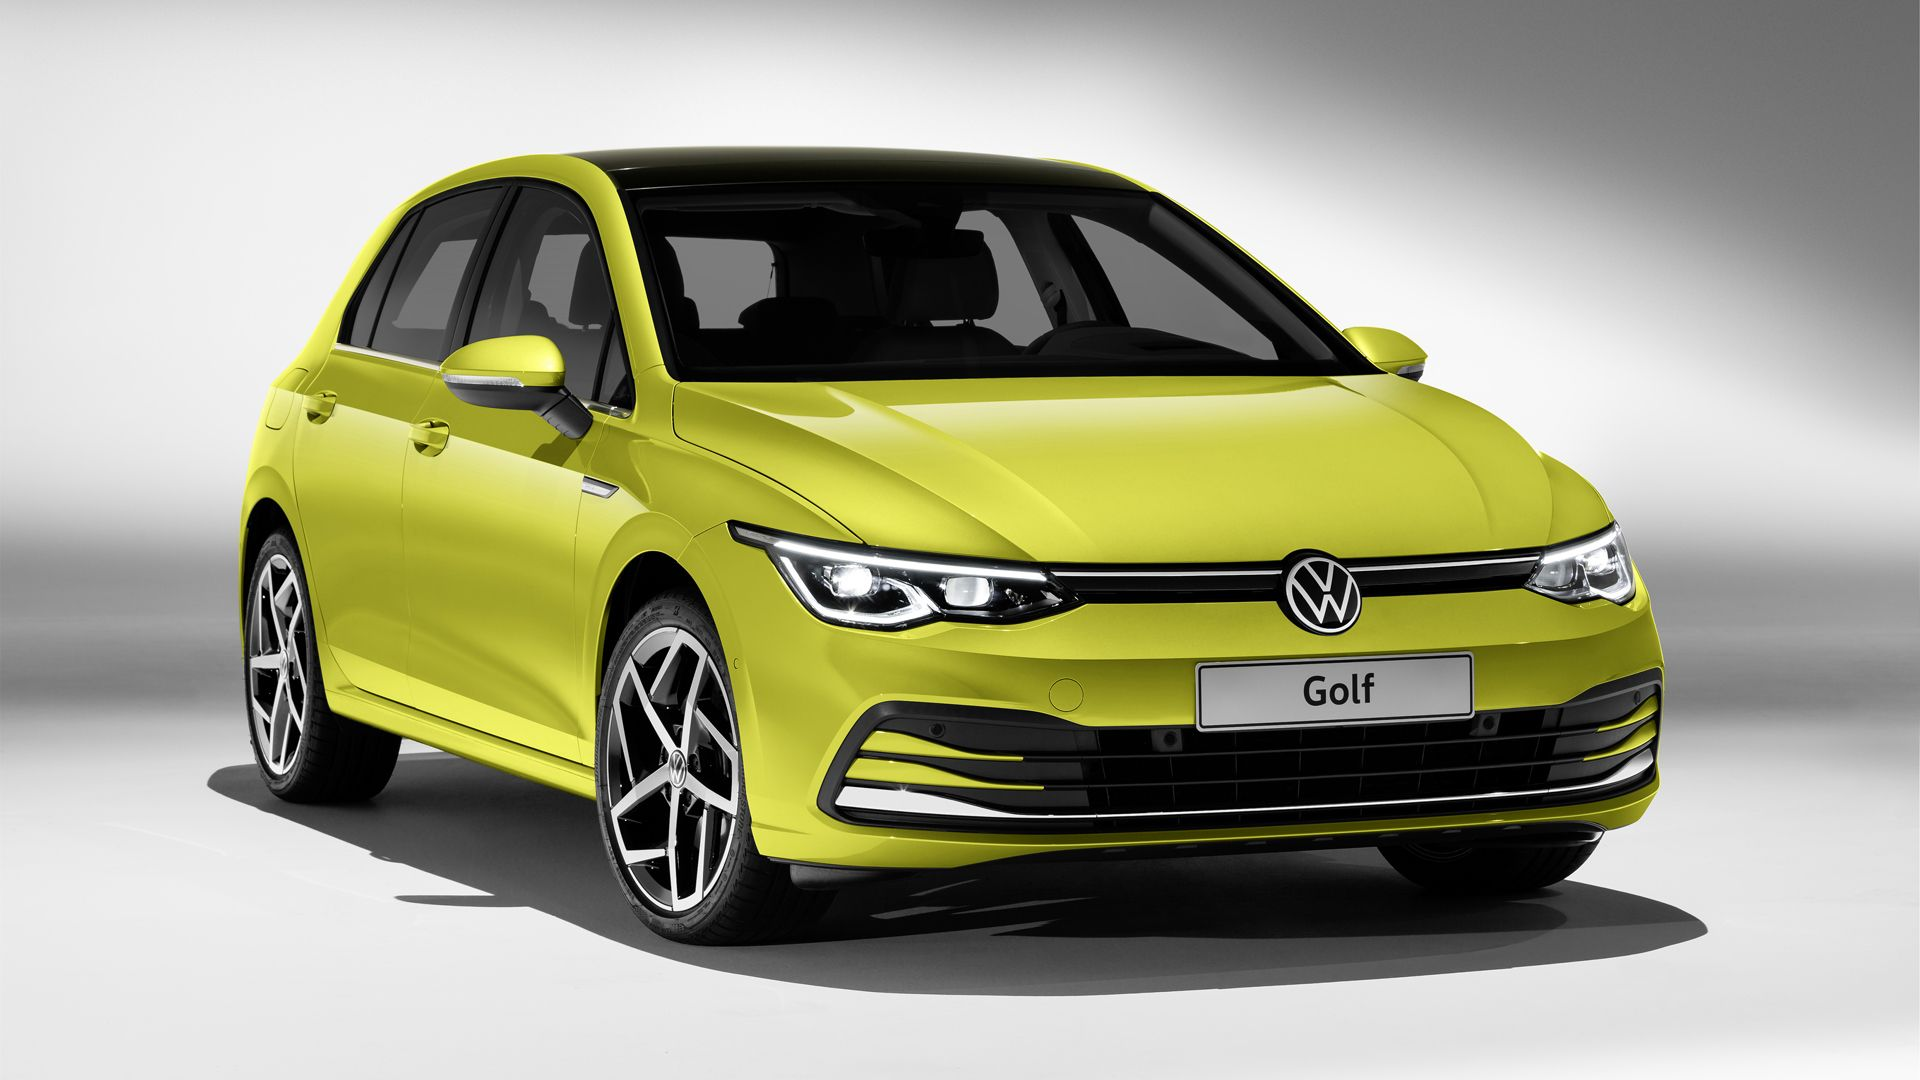 All New Eighth Generation Vw Golf Debuts For Europe What S New Design Engines Volkswagen Golf Volkswagen Up Car Volkswagen